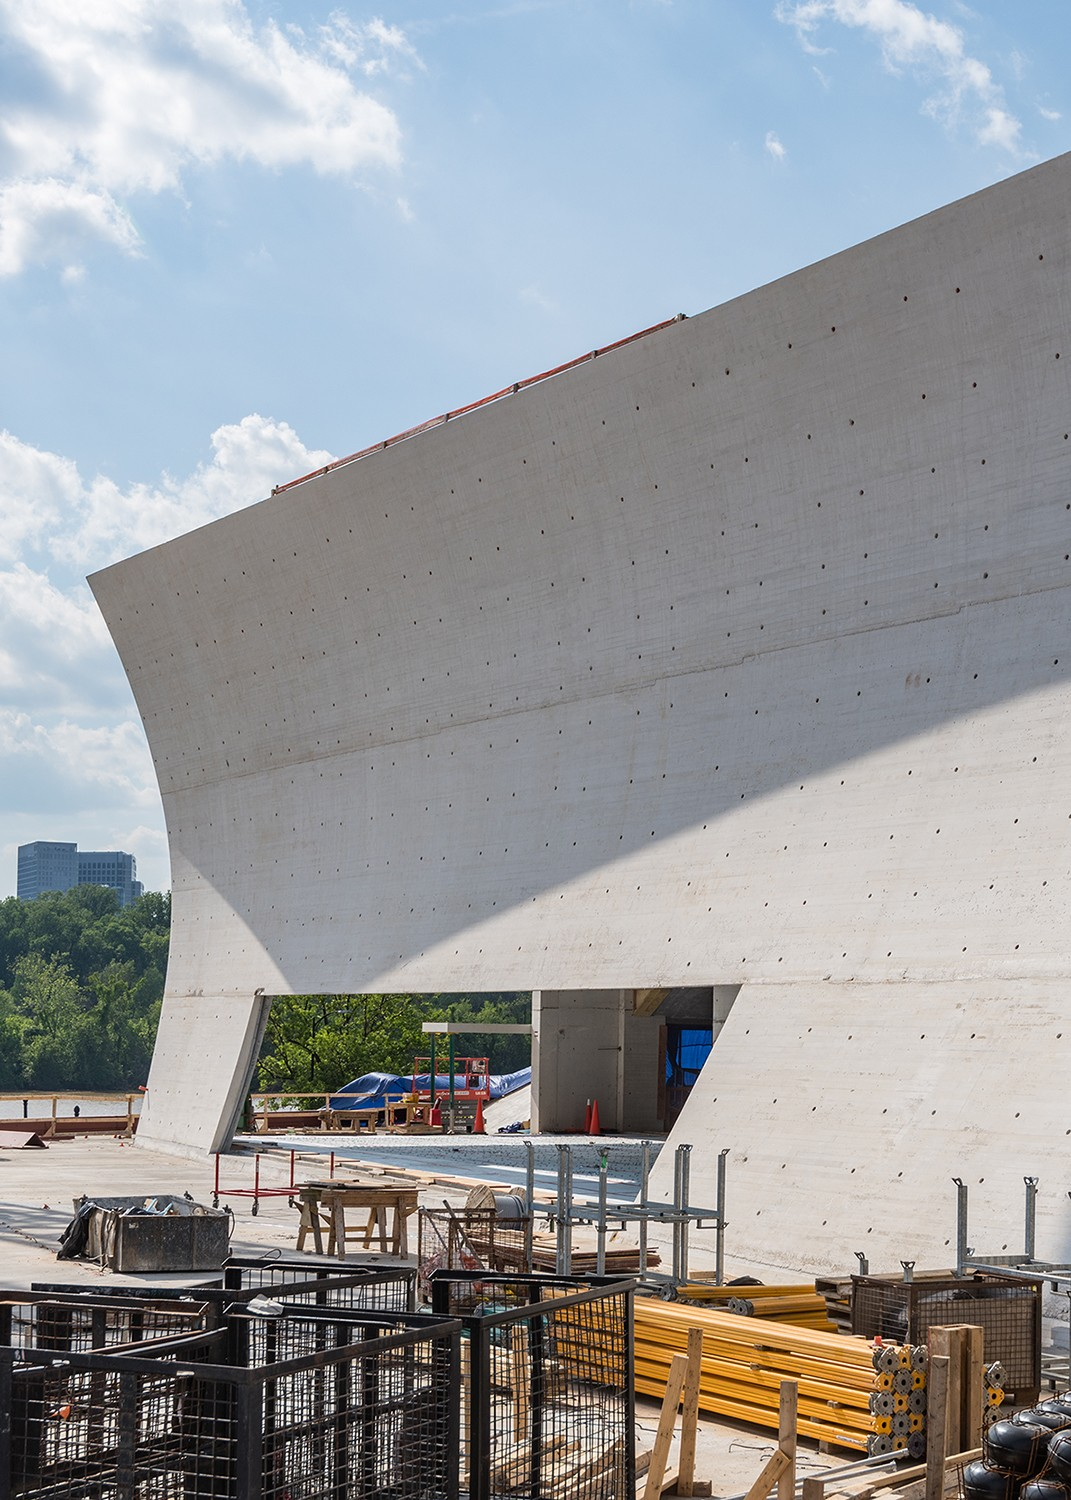 https://s3.us-east-2.amazonaws.com/steven-holl/uploads/projects/project-images/JontahanMorefield_JFK_2018_05_25-Kennedy Center Expansion-DSC_3063_WV.jpg